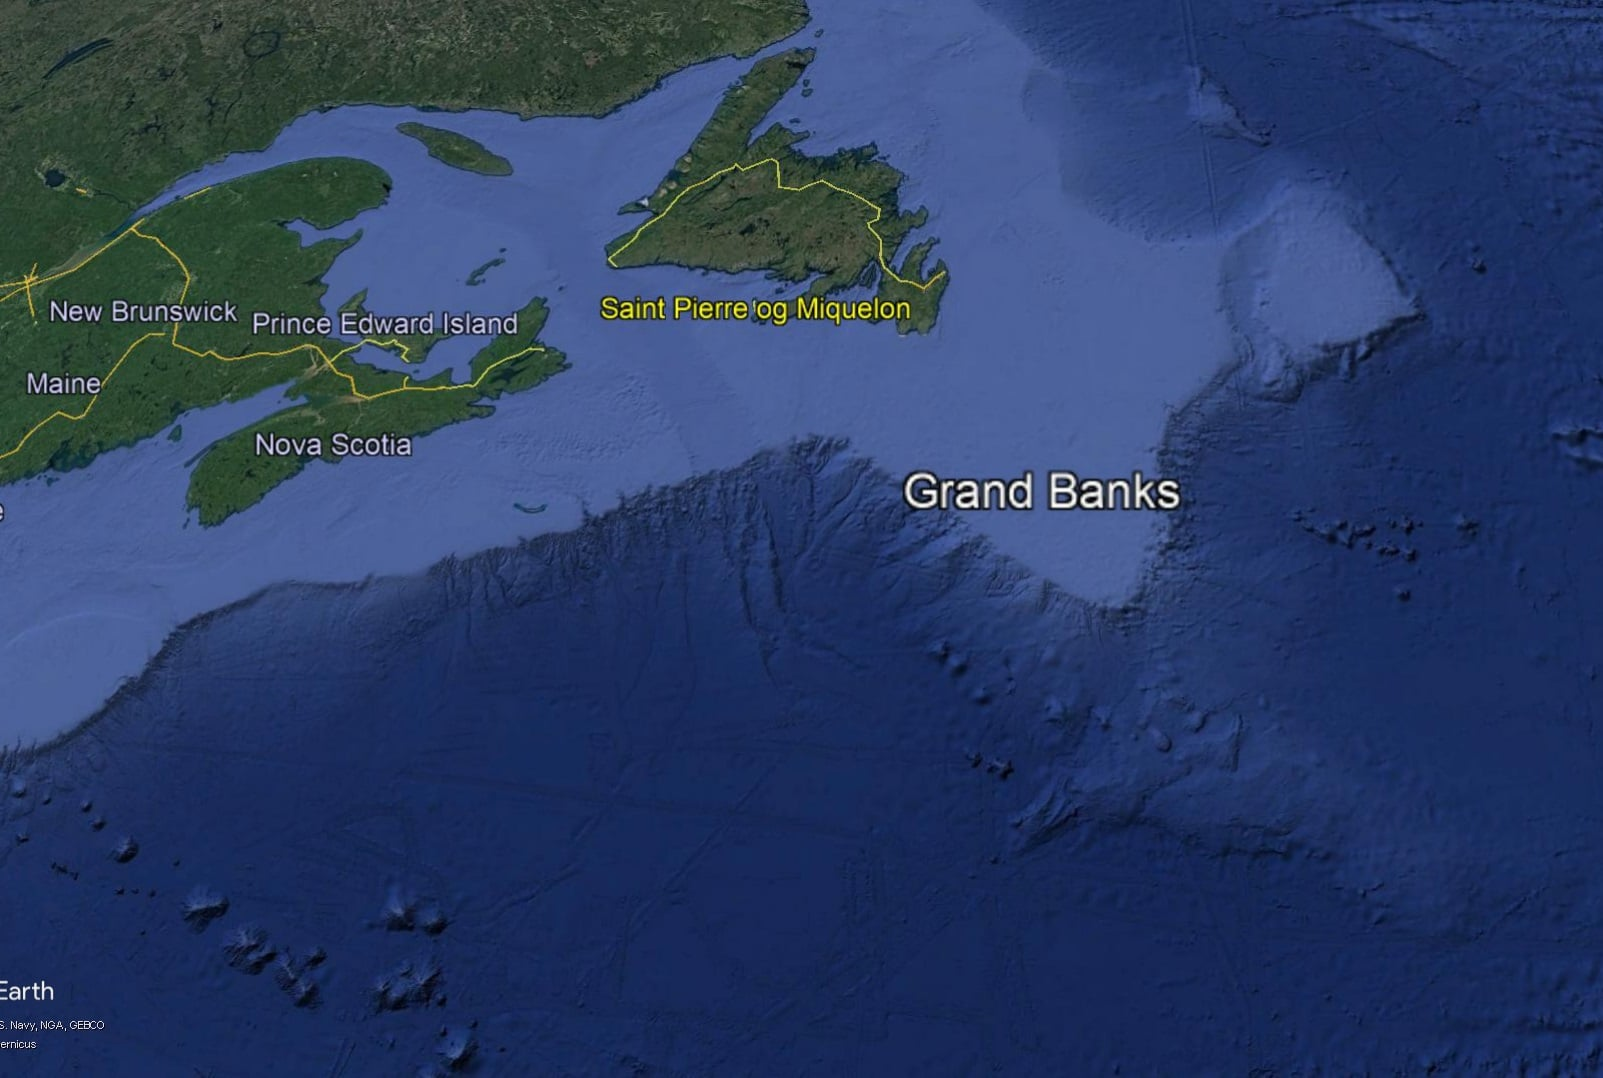 More oil to be found at Grand Banks